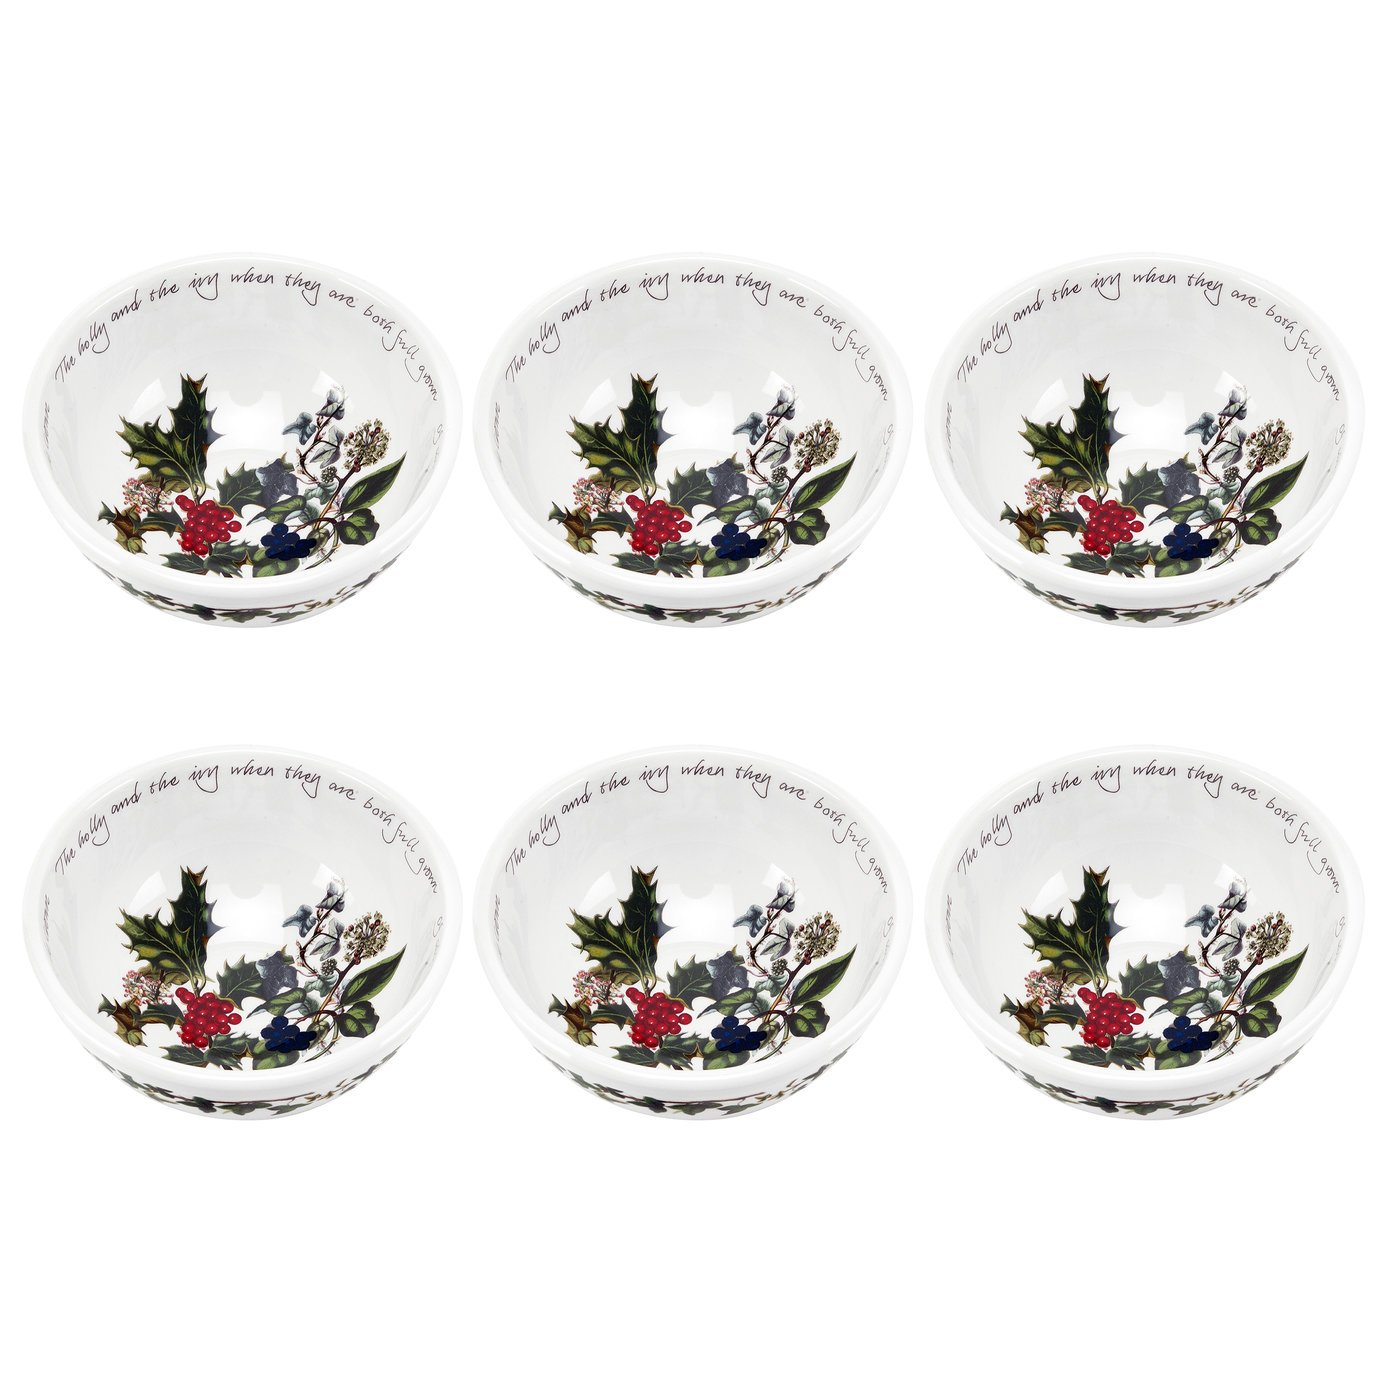 Portmeirion Holly and Ivy Individual Fruit Salad Bowls, Set of 6 64240